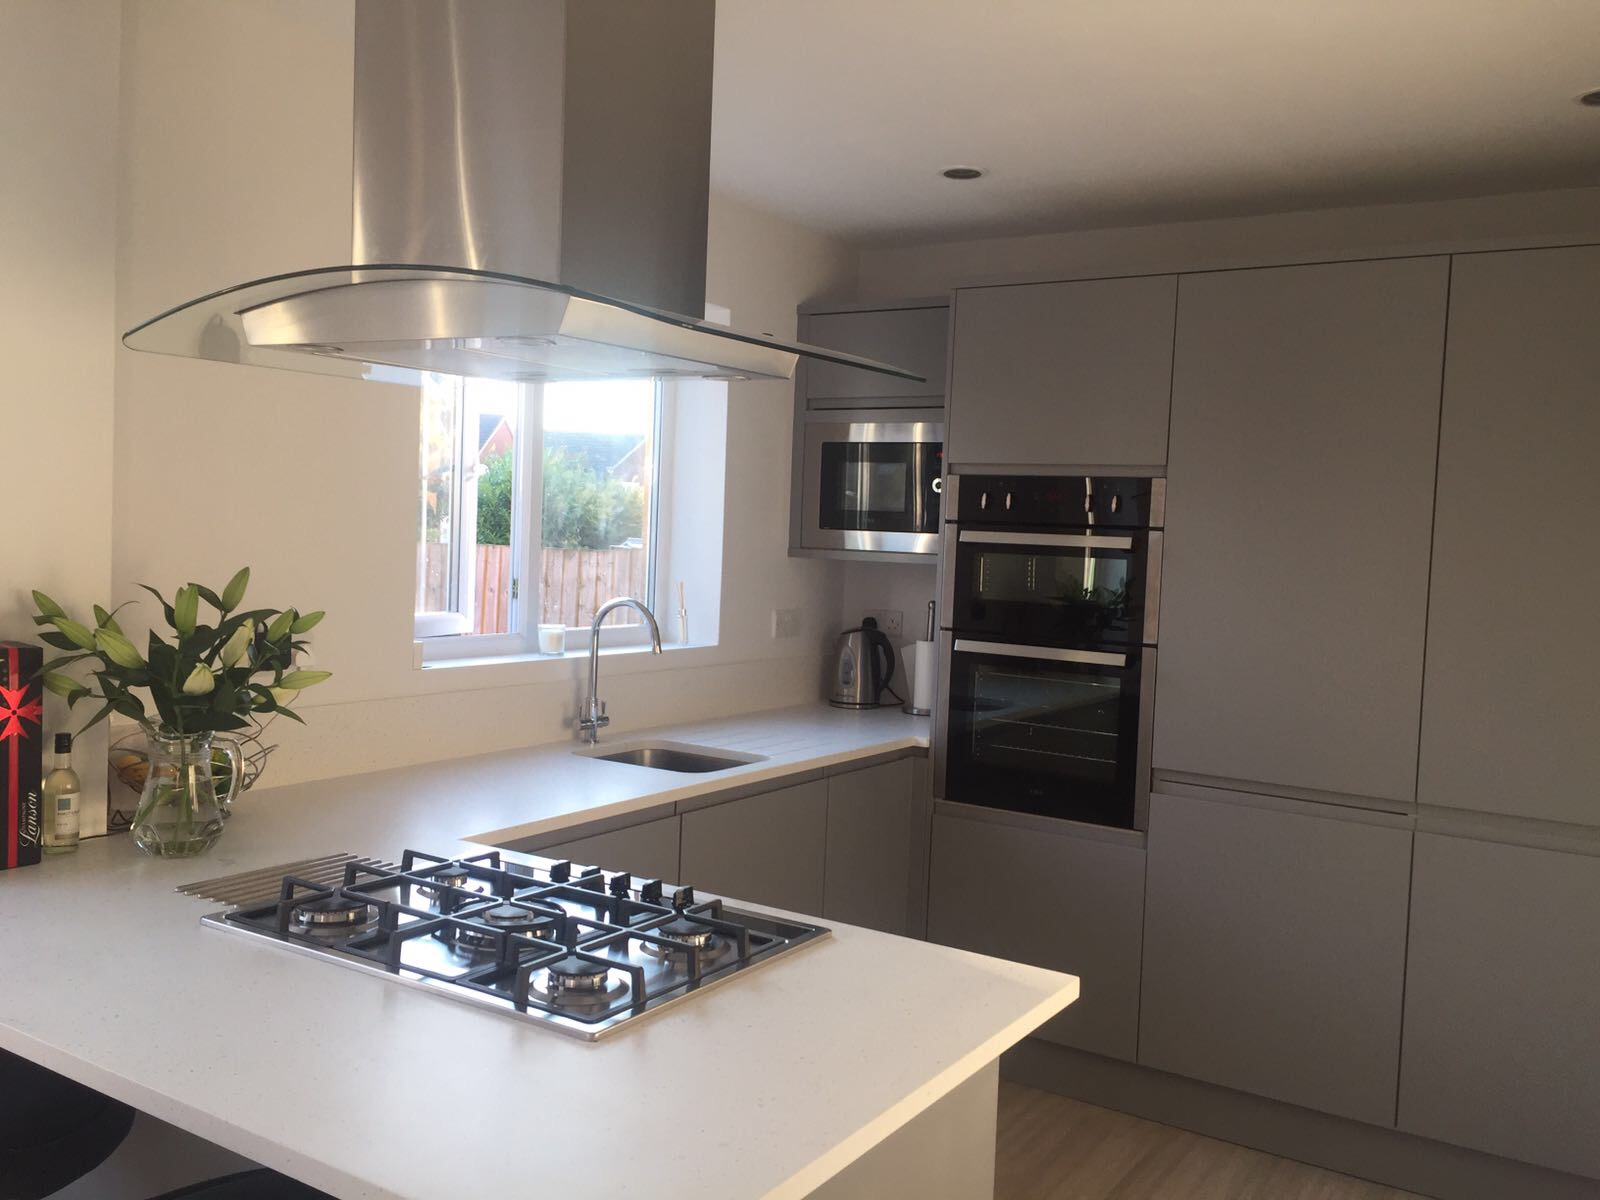 Image of vision kitchens bathrooms home improvements for Mr L in Glasgow